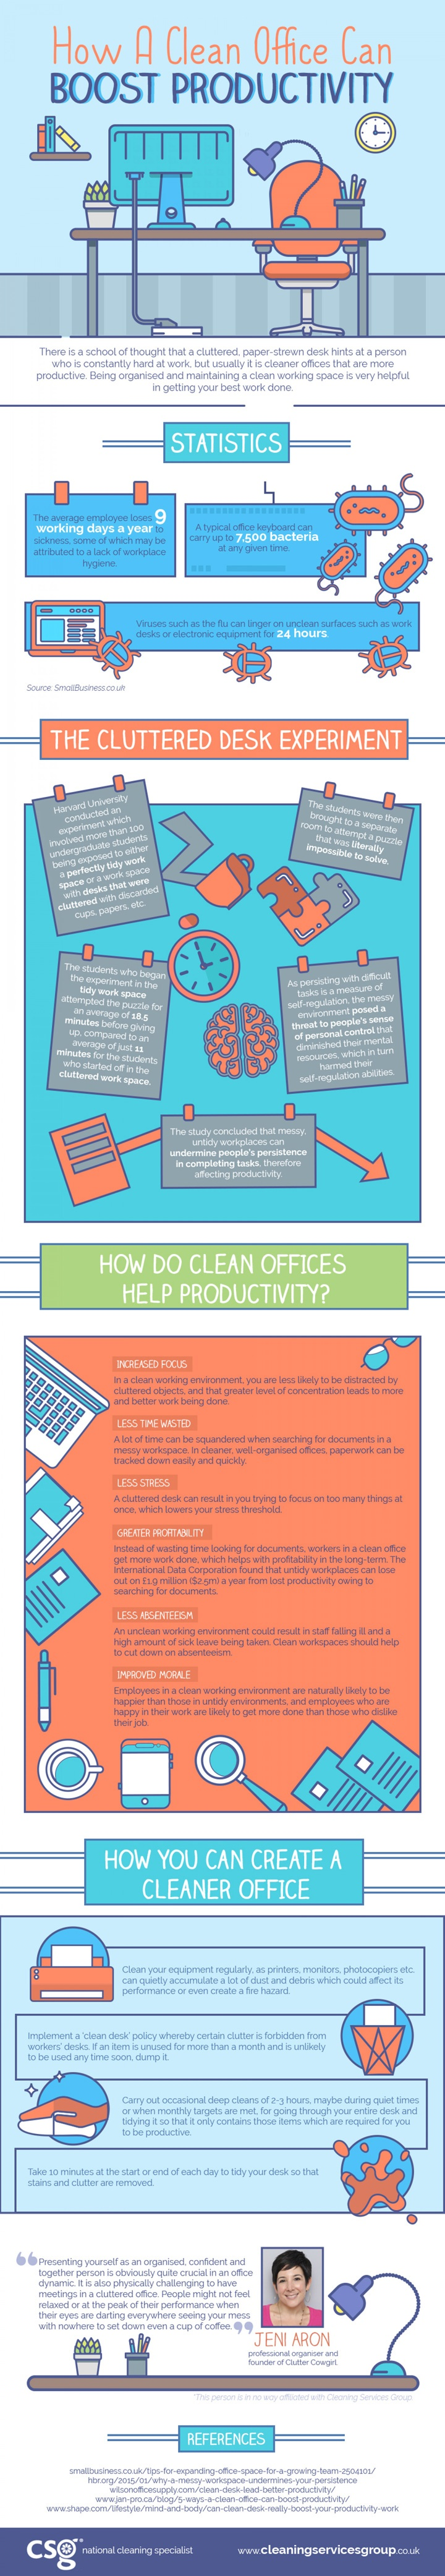 how a clean office can boost productivity